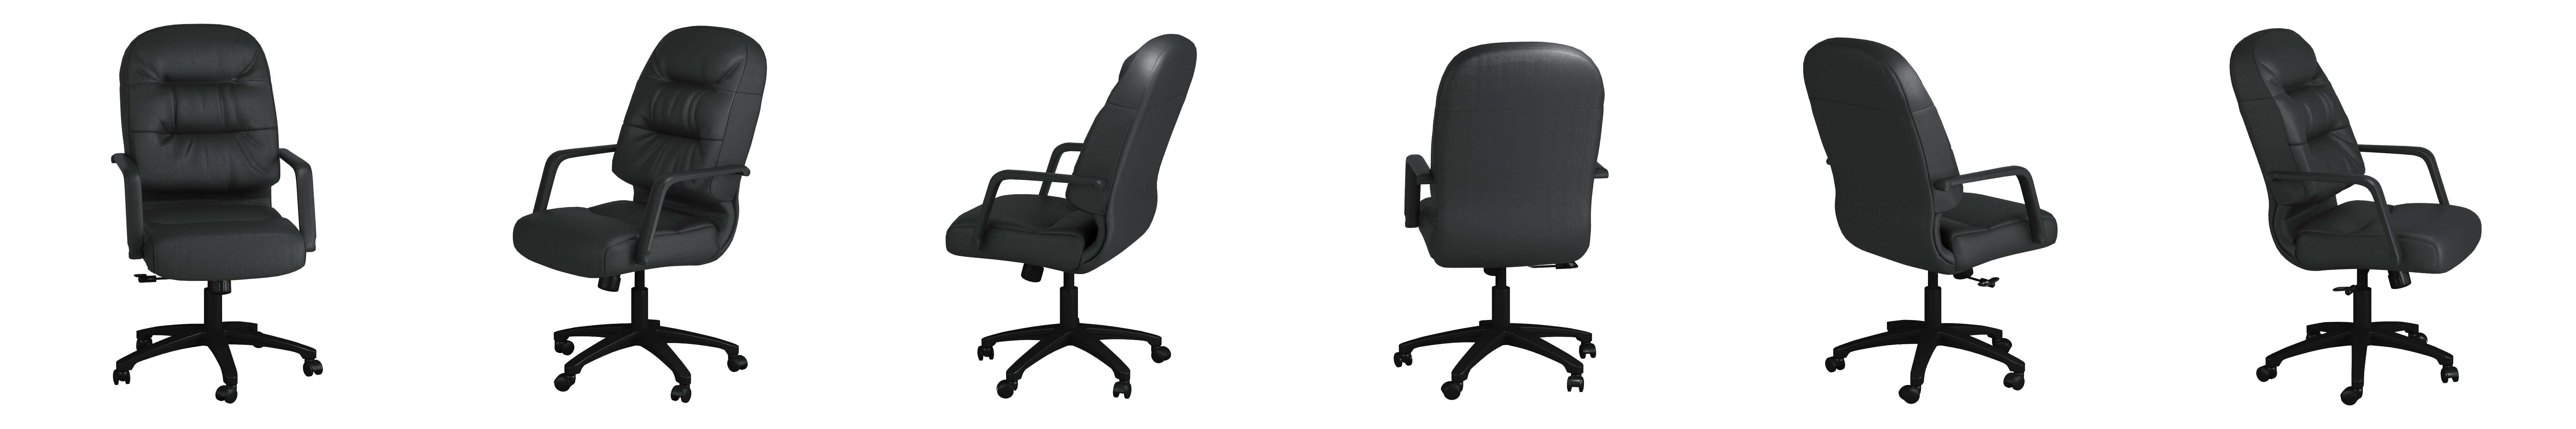 hon pillow soft chair. Amazon.com: HON Leather Executive Chair - Pillow-Soft Series High-Back Office Chair, Black (H2091): Kitchen \u0026 Dining Hon Pillow Soft